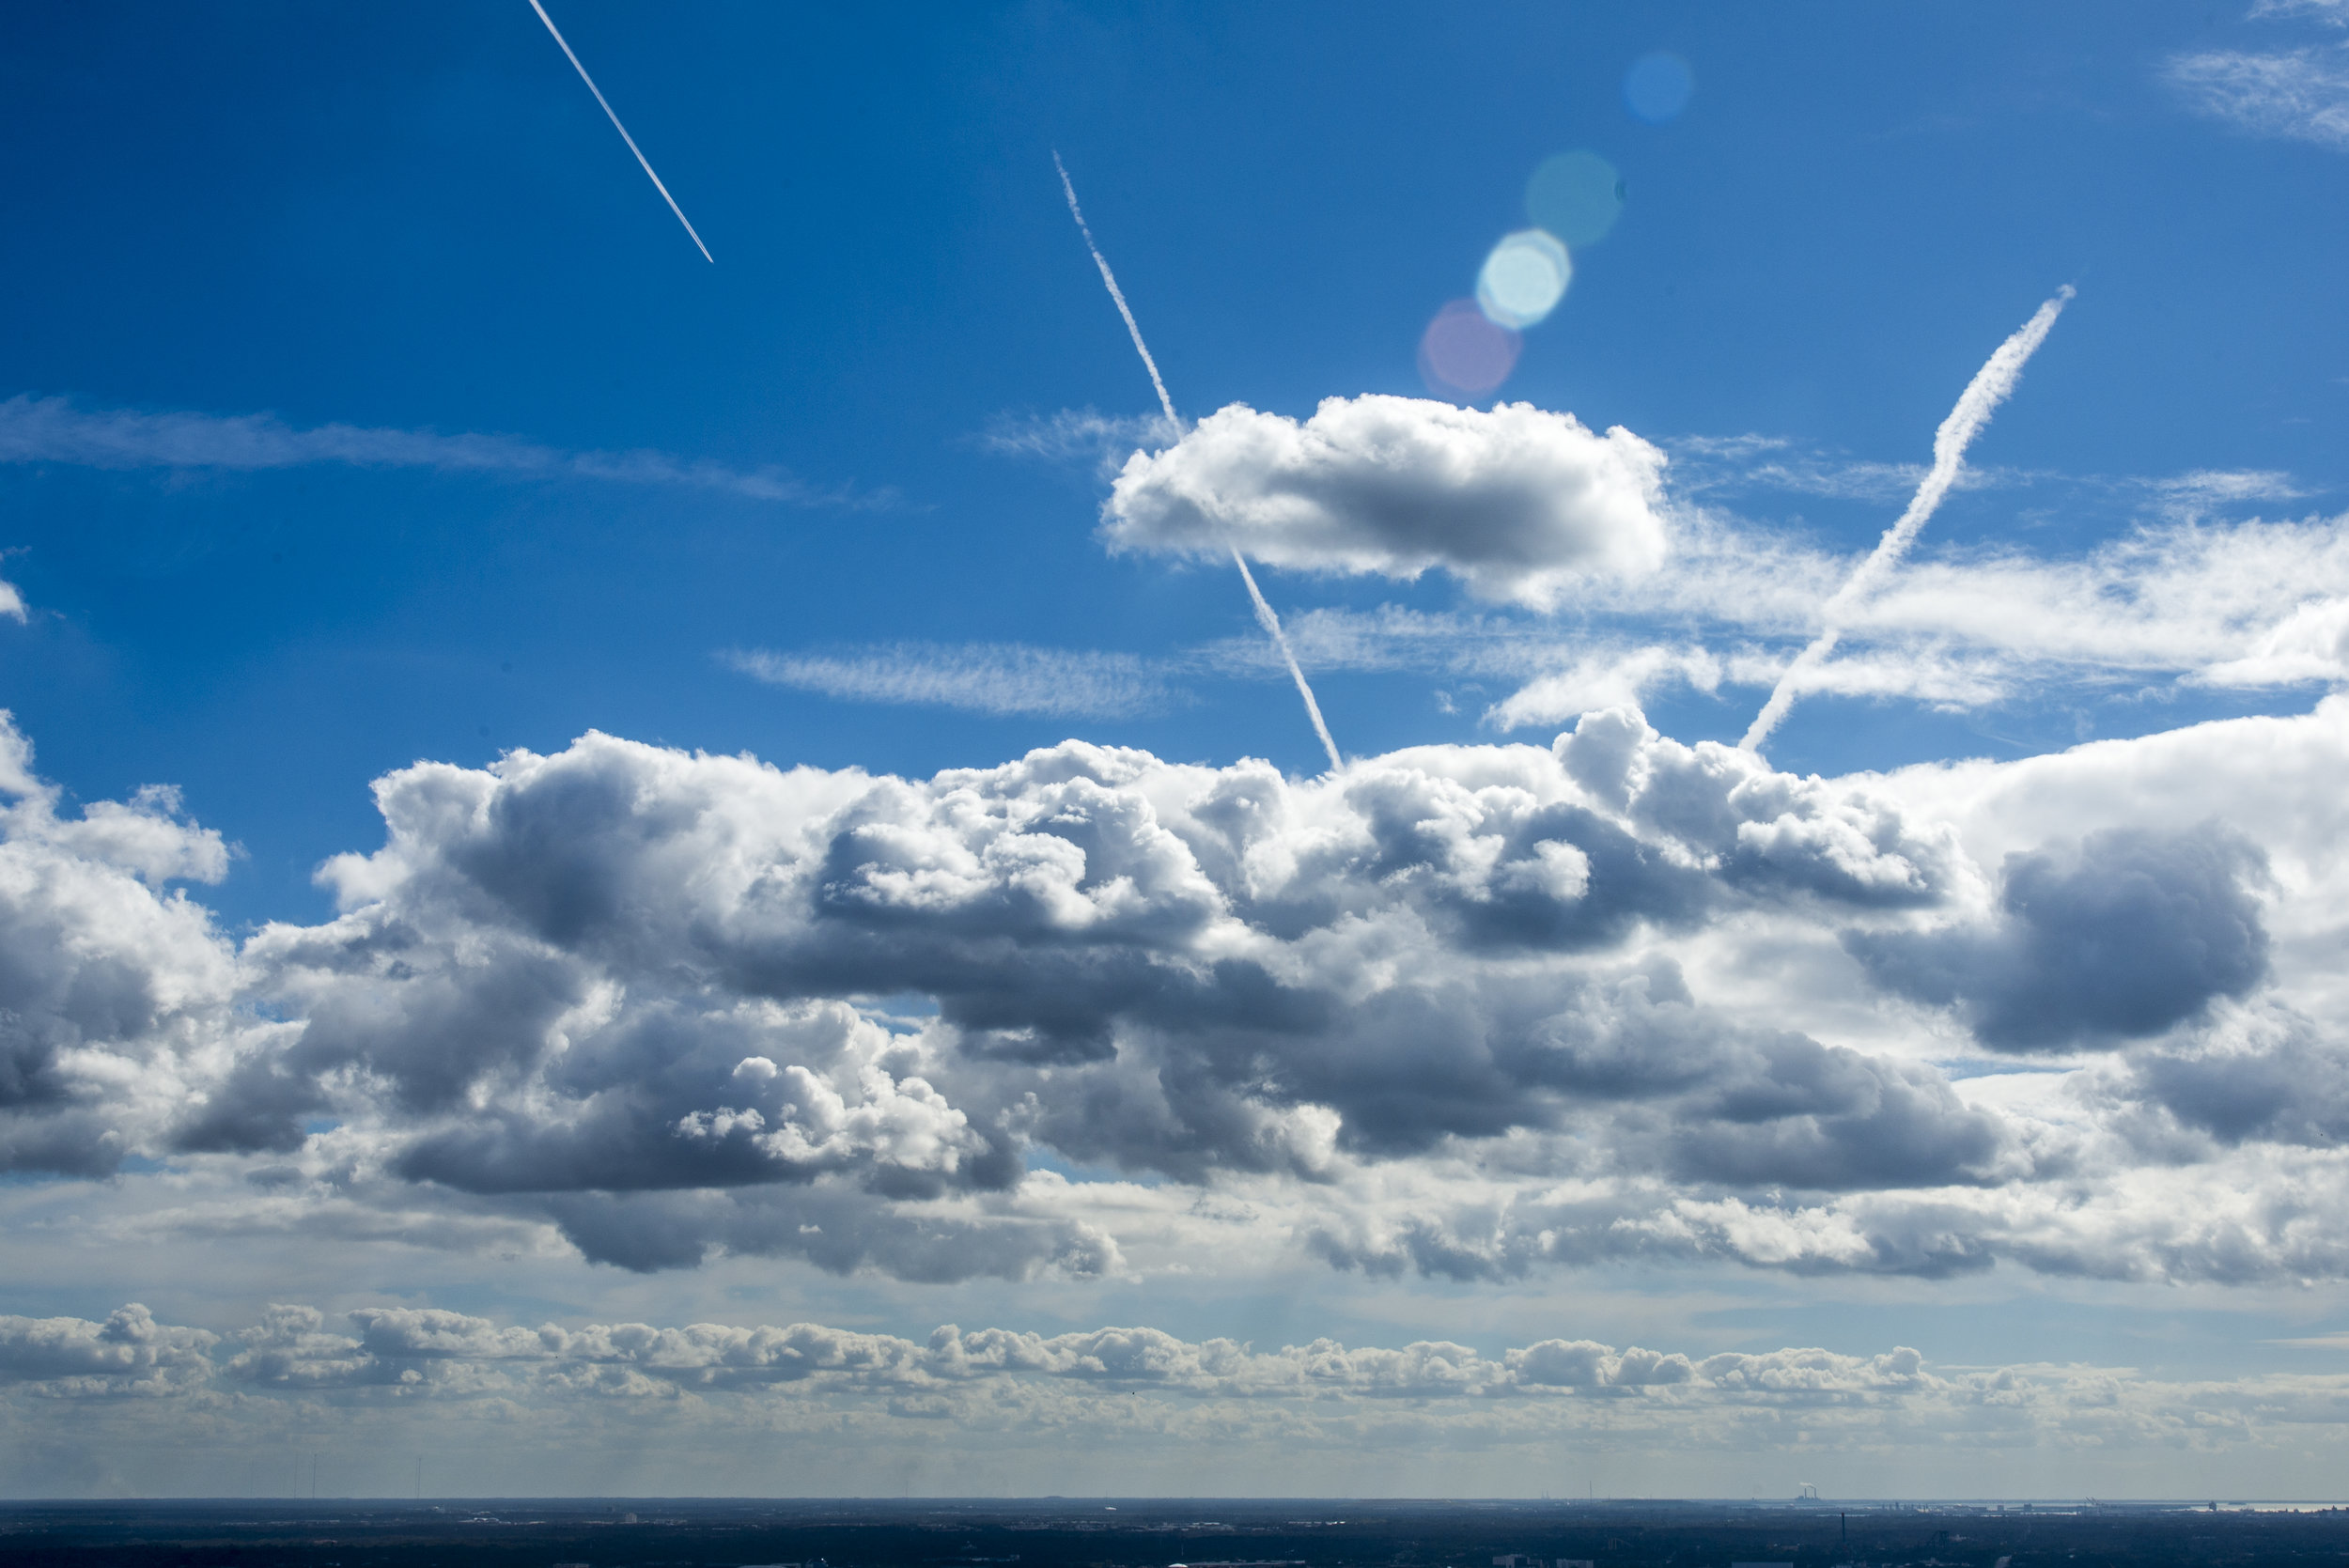 Clouds and Plane trails STOCK 12-14-17 02.jpg